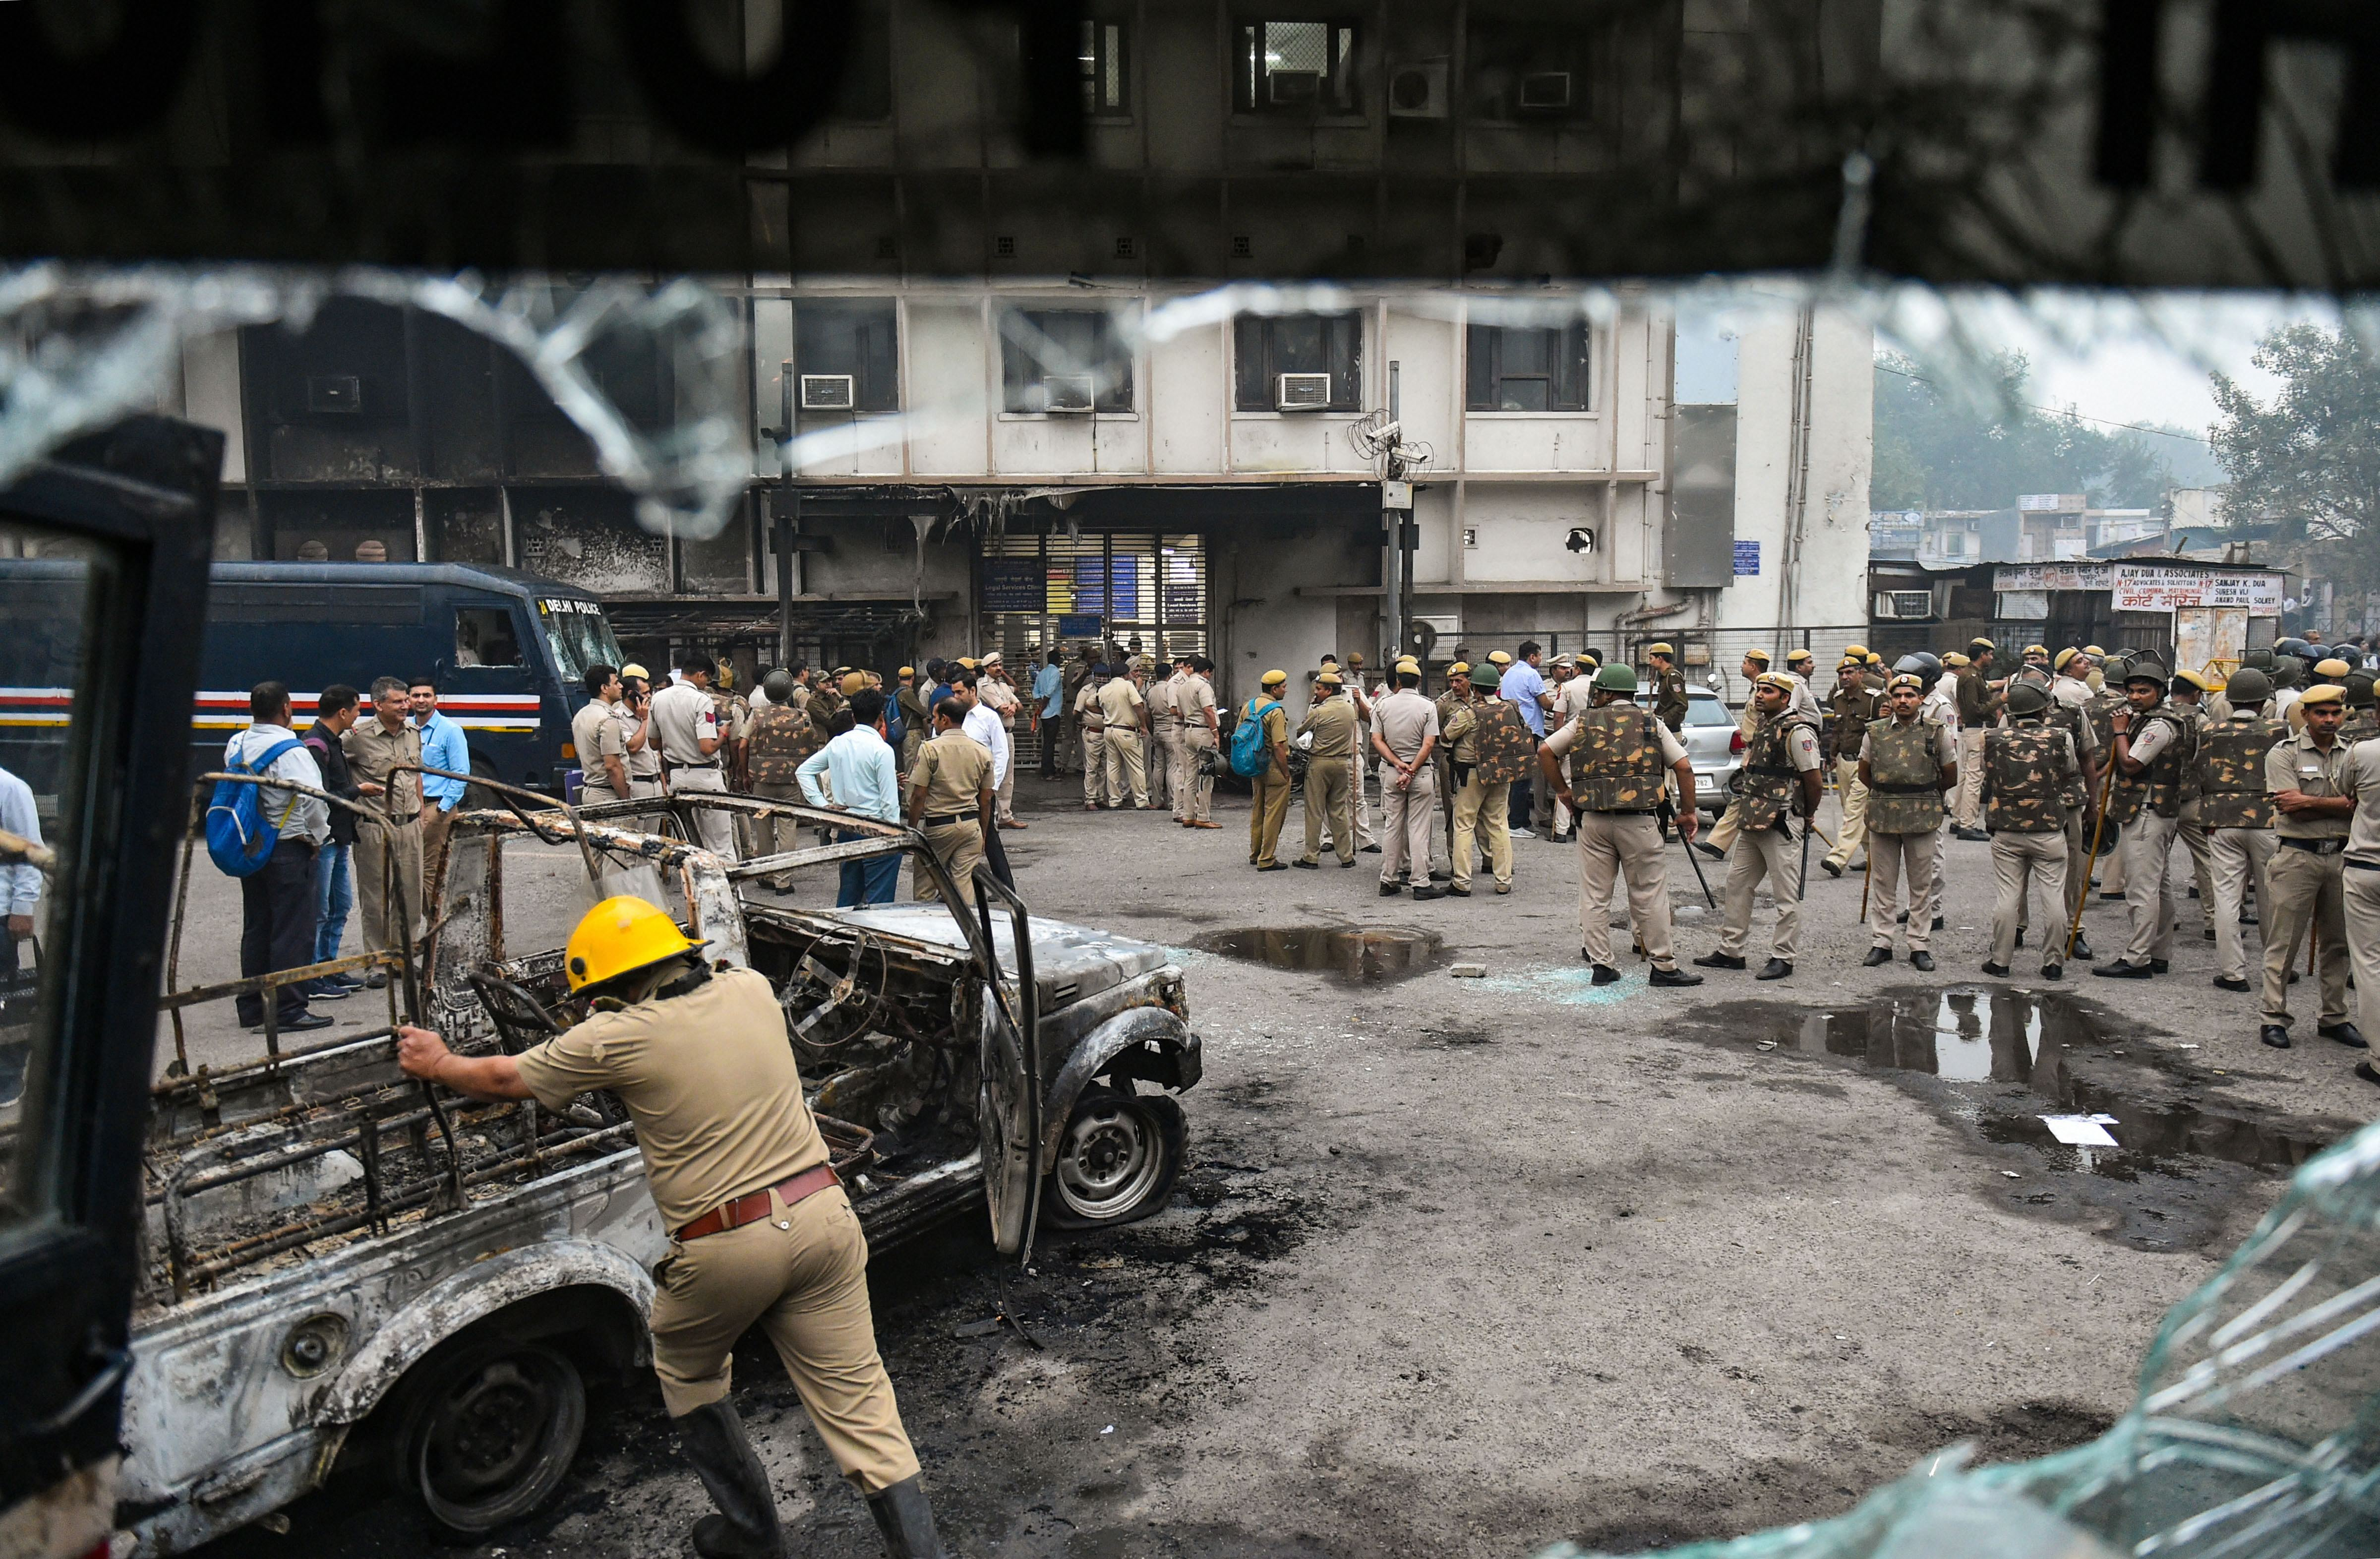 A view of a police vehicle after it was burnt down during clashes between lawyers and police personnel at Tis Hazari court complex in New Delhi, Saturday, November 2, 2019.